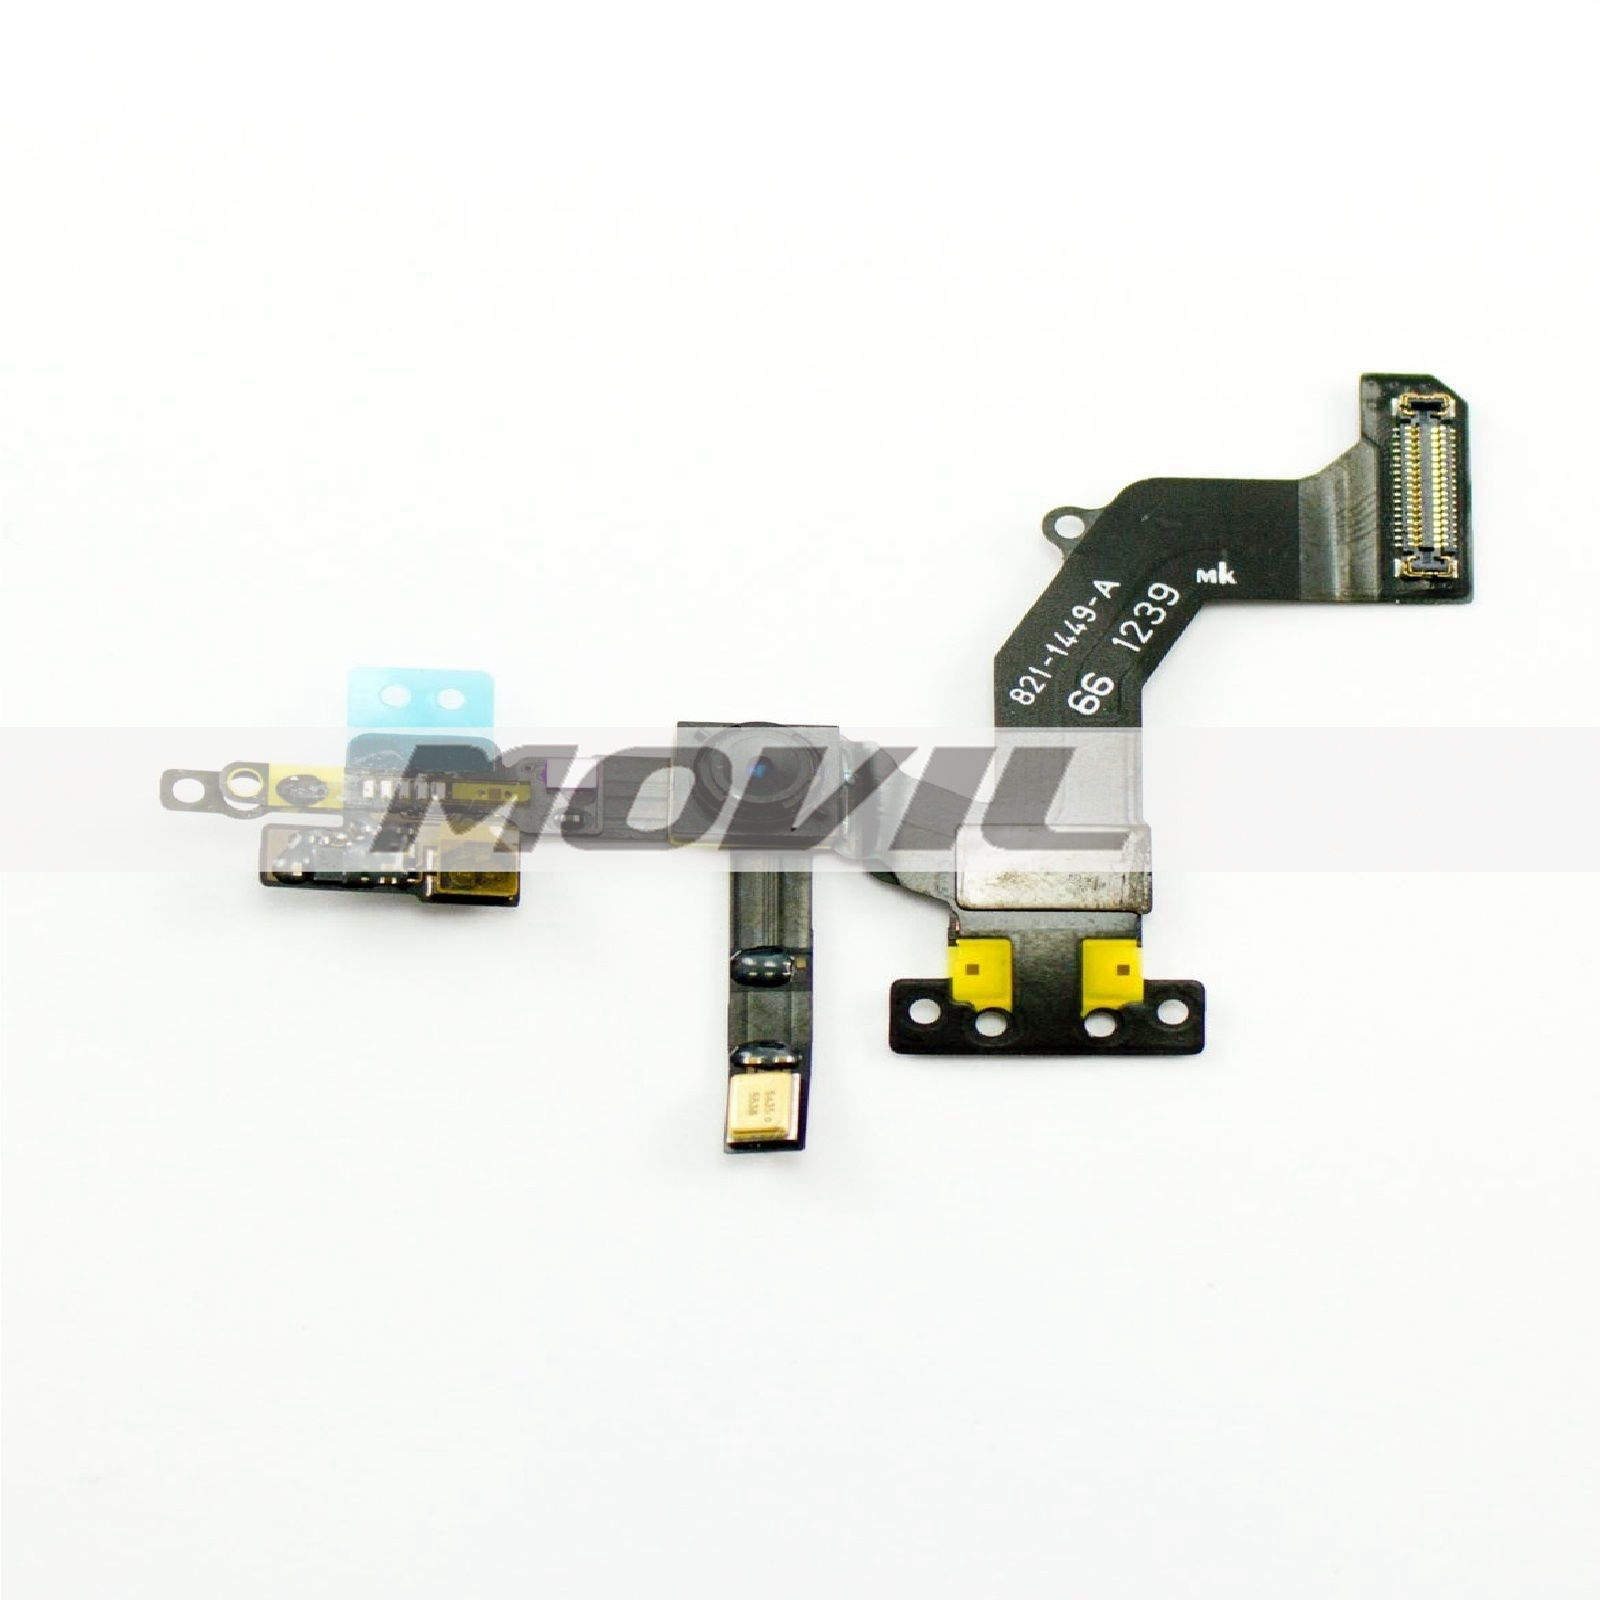 Replacement Front Facing Camera With Proximity Sensor For iPhone 5